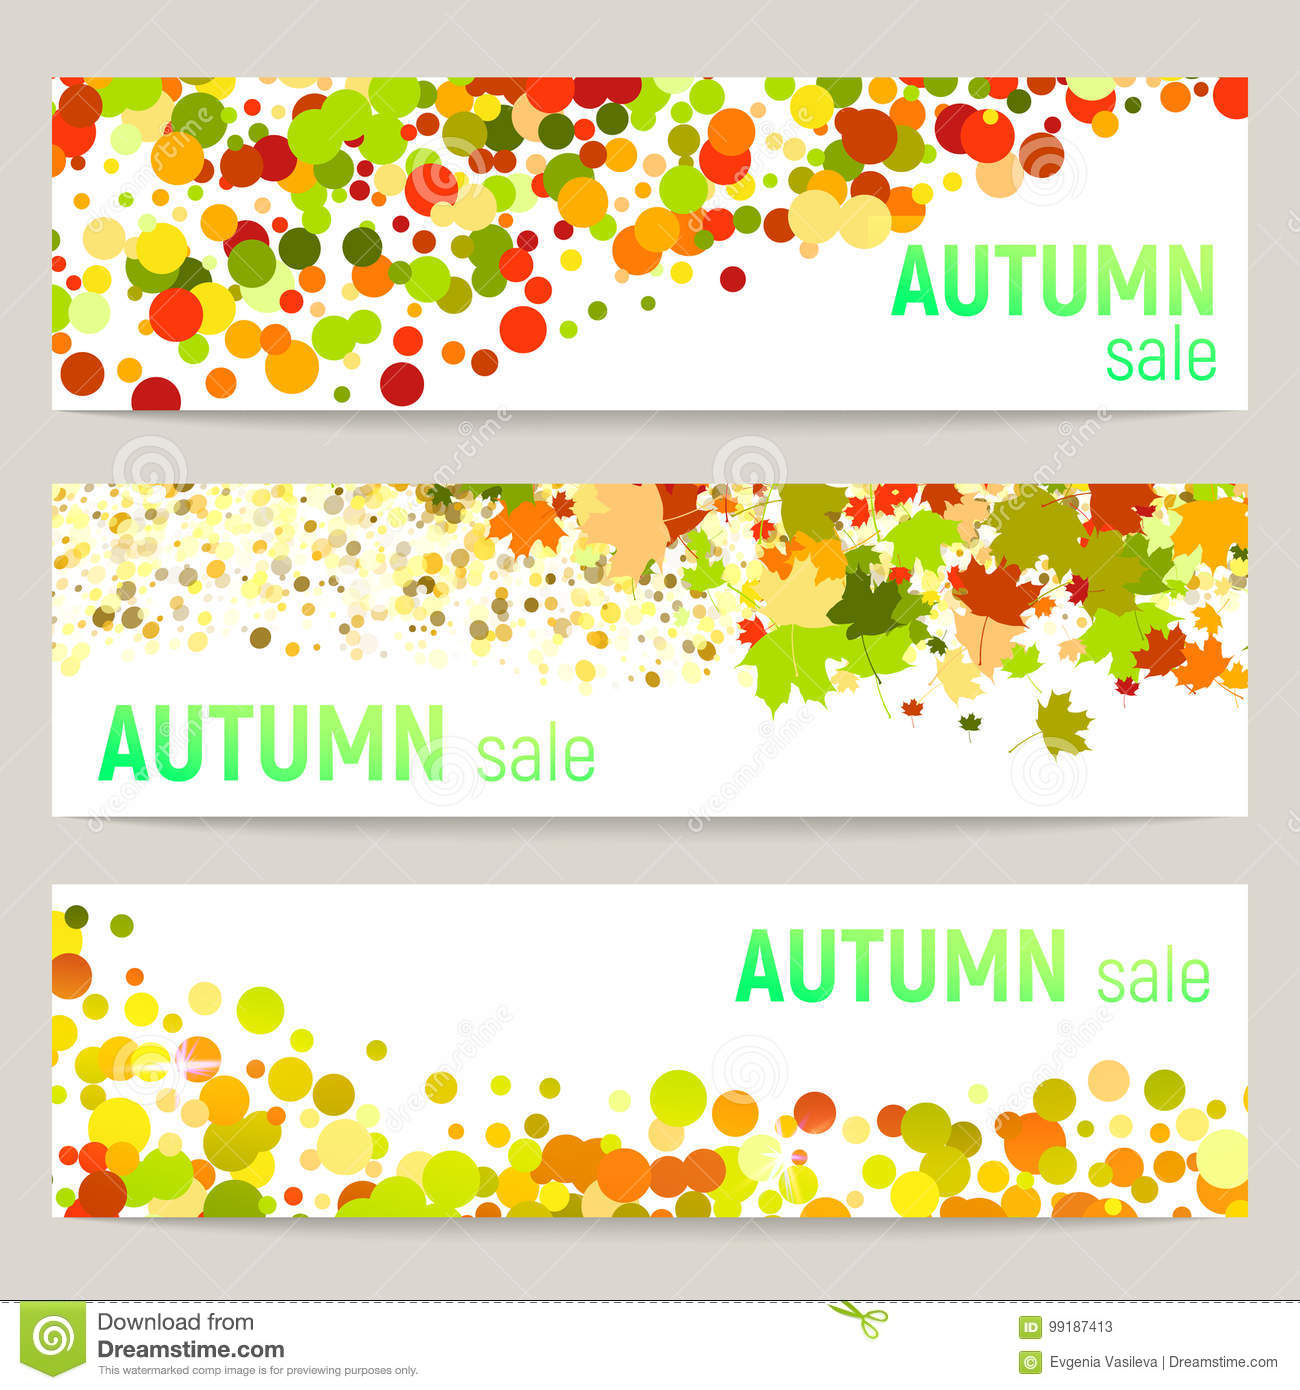 Set of three vector banners with colorful autumn leaves and circles on a white background